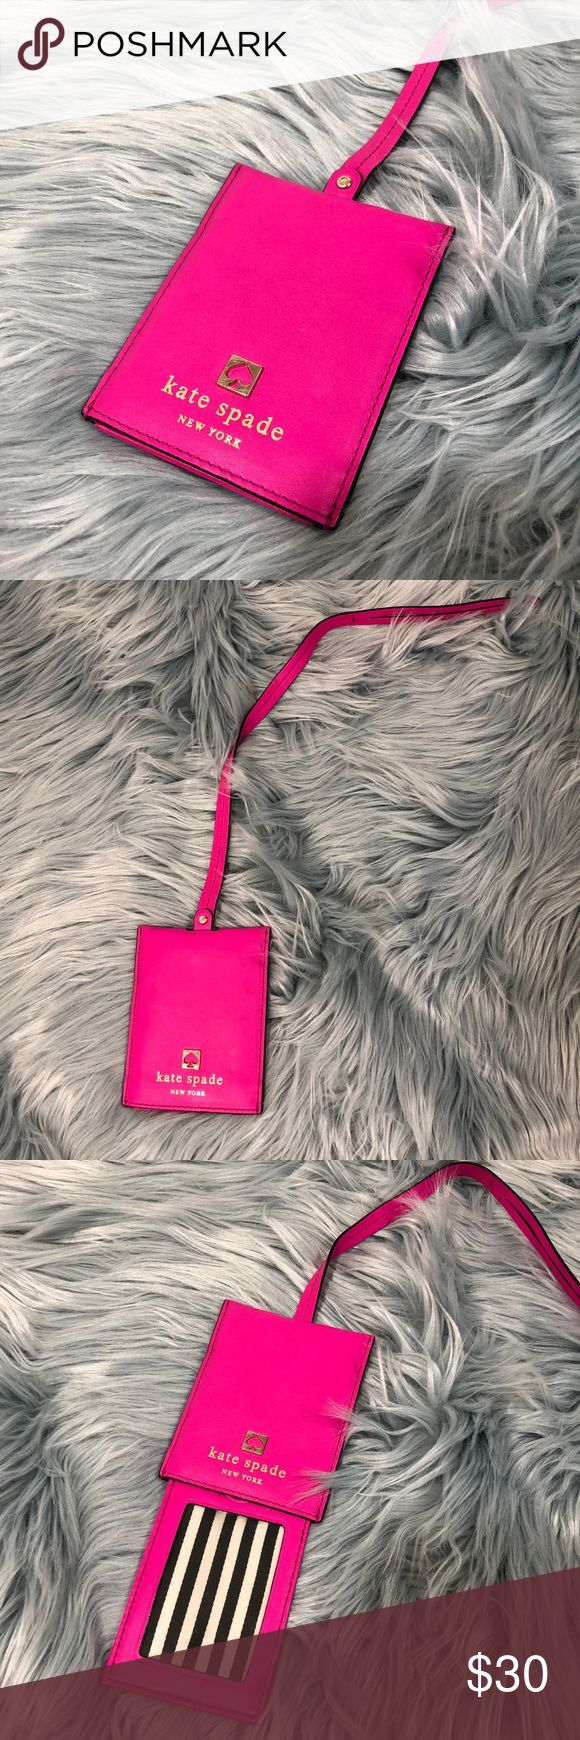 "🔥🔥Kate Spade Hot Pink Luggage Tag Very cute luggage tag from Kate Spade. Only used once. Great condition. 3"" W x 4"" H, strap length: 14"" kate spade Accessories"